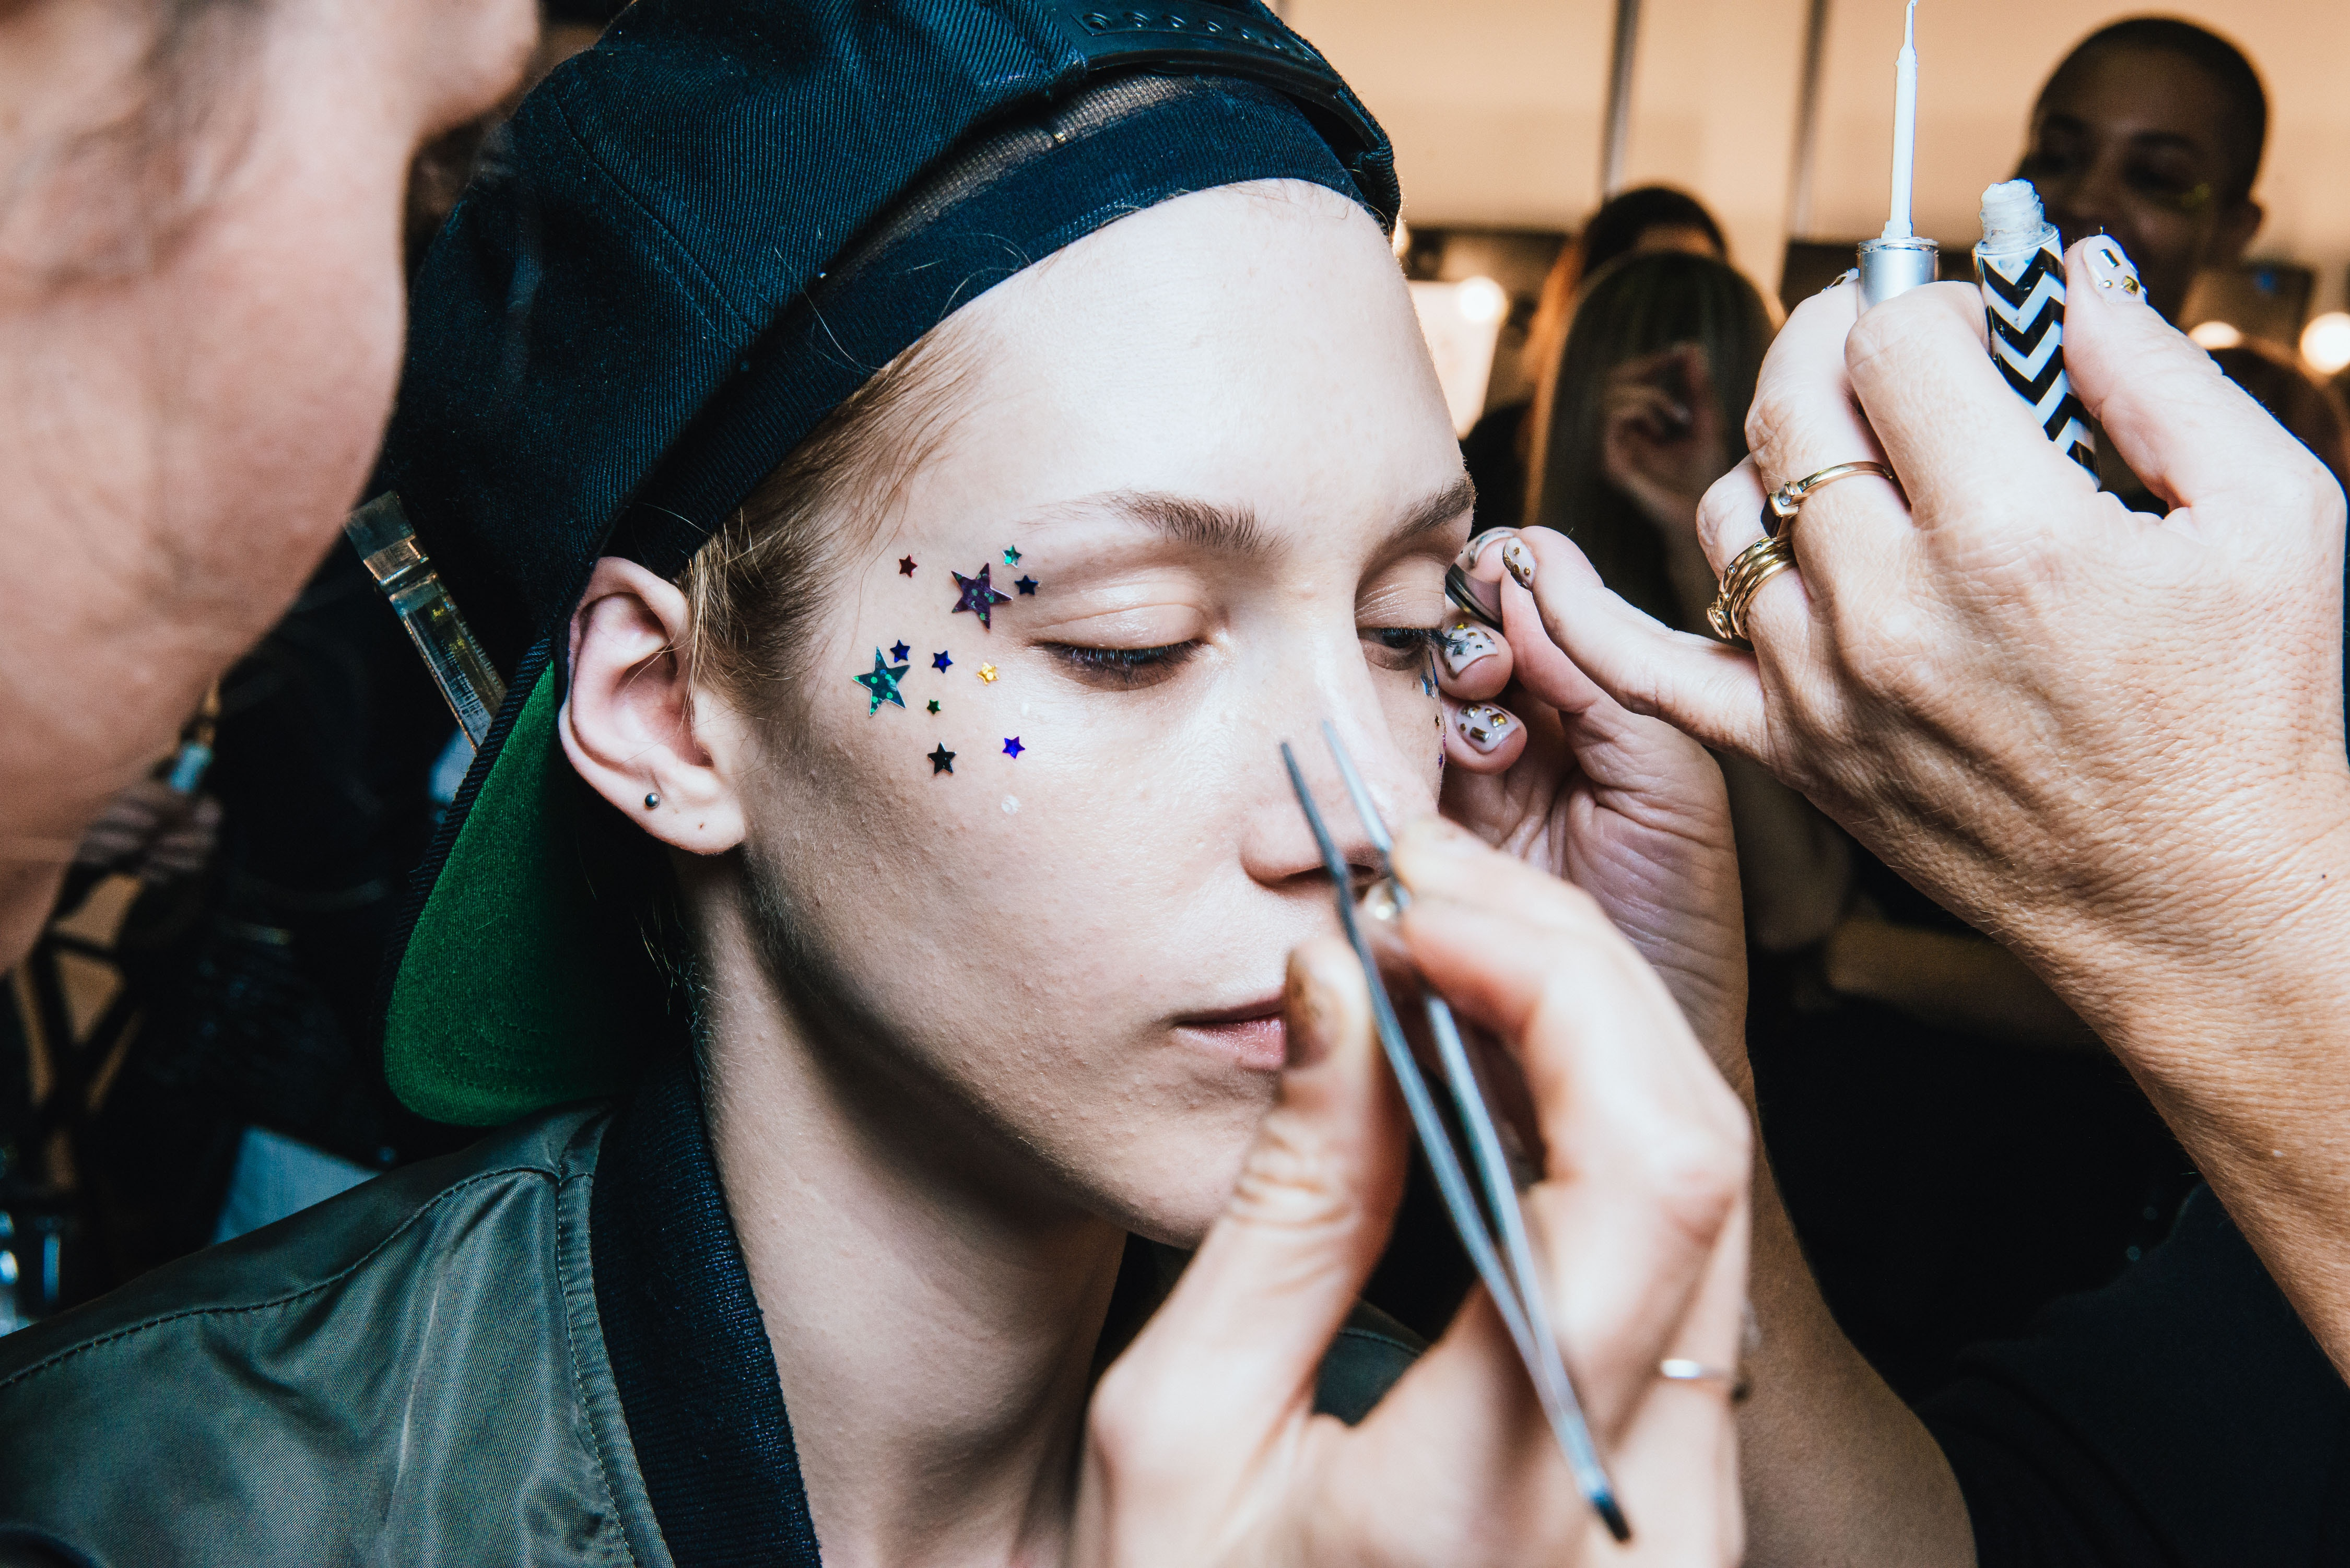 Makeup artists work on a model in a beauty convention